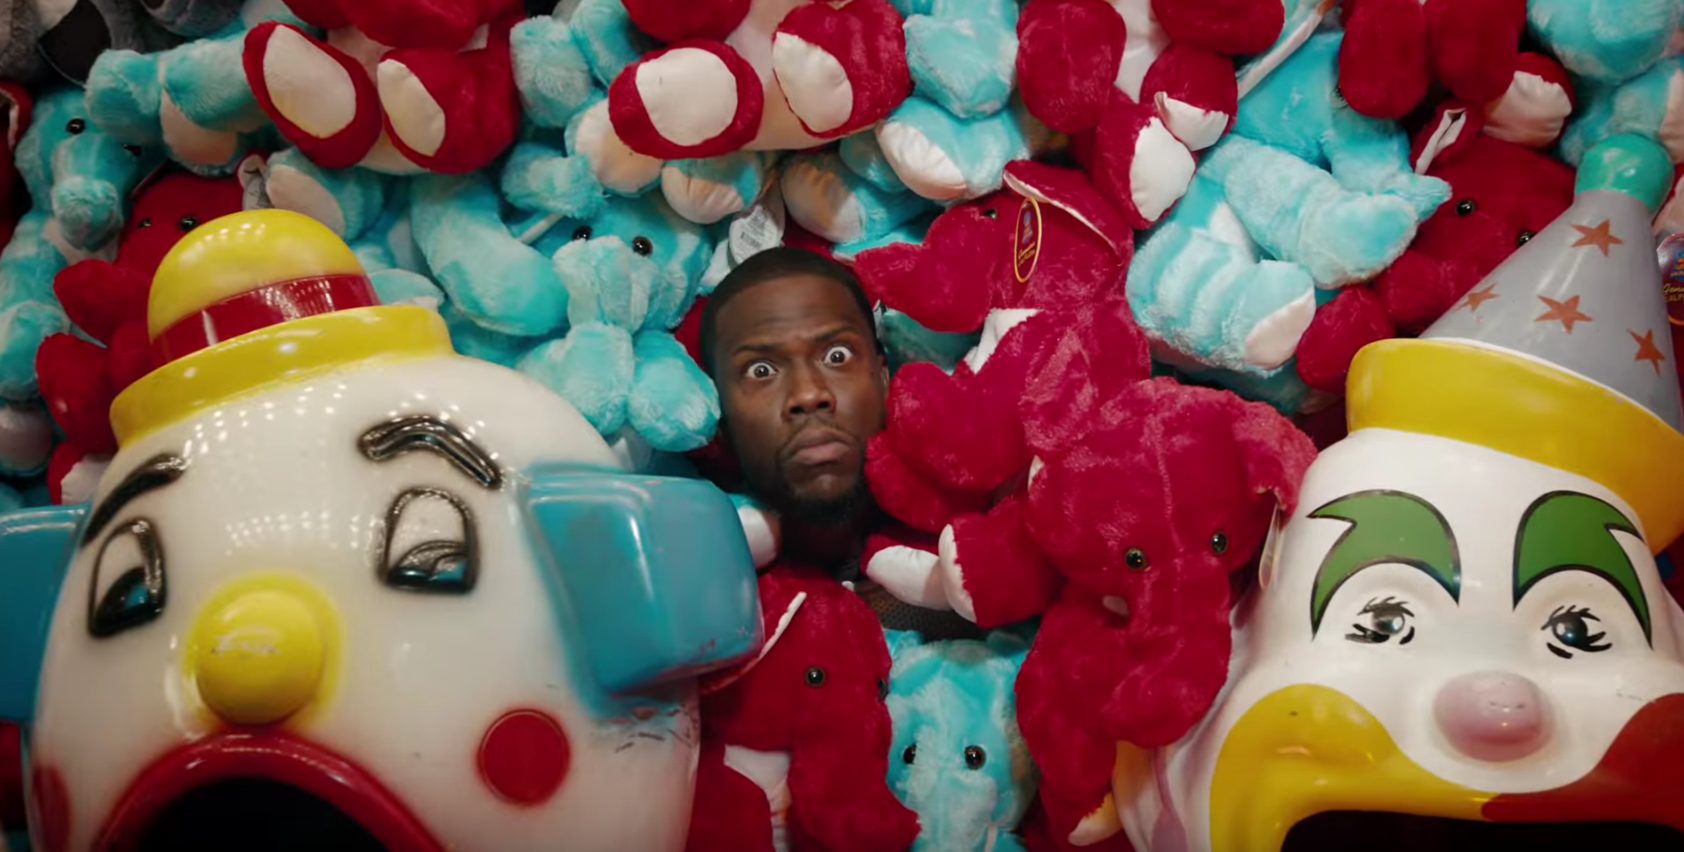 Watch Kevin Hart in this Super Bowl 50 ad for Hyundai